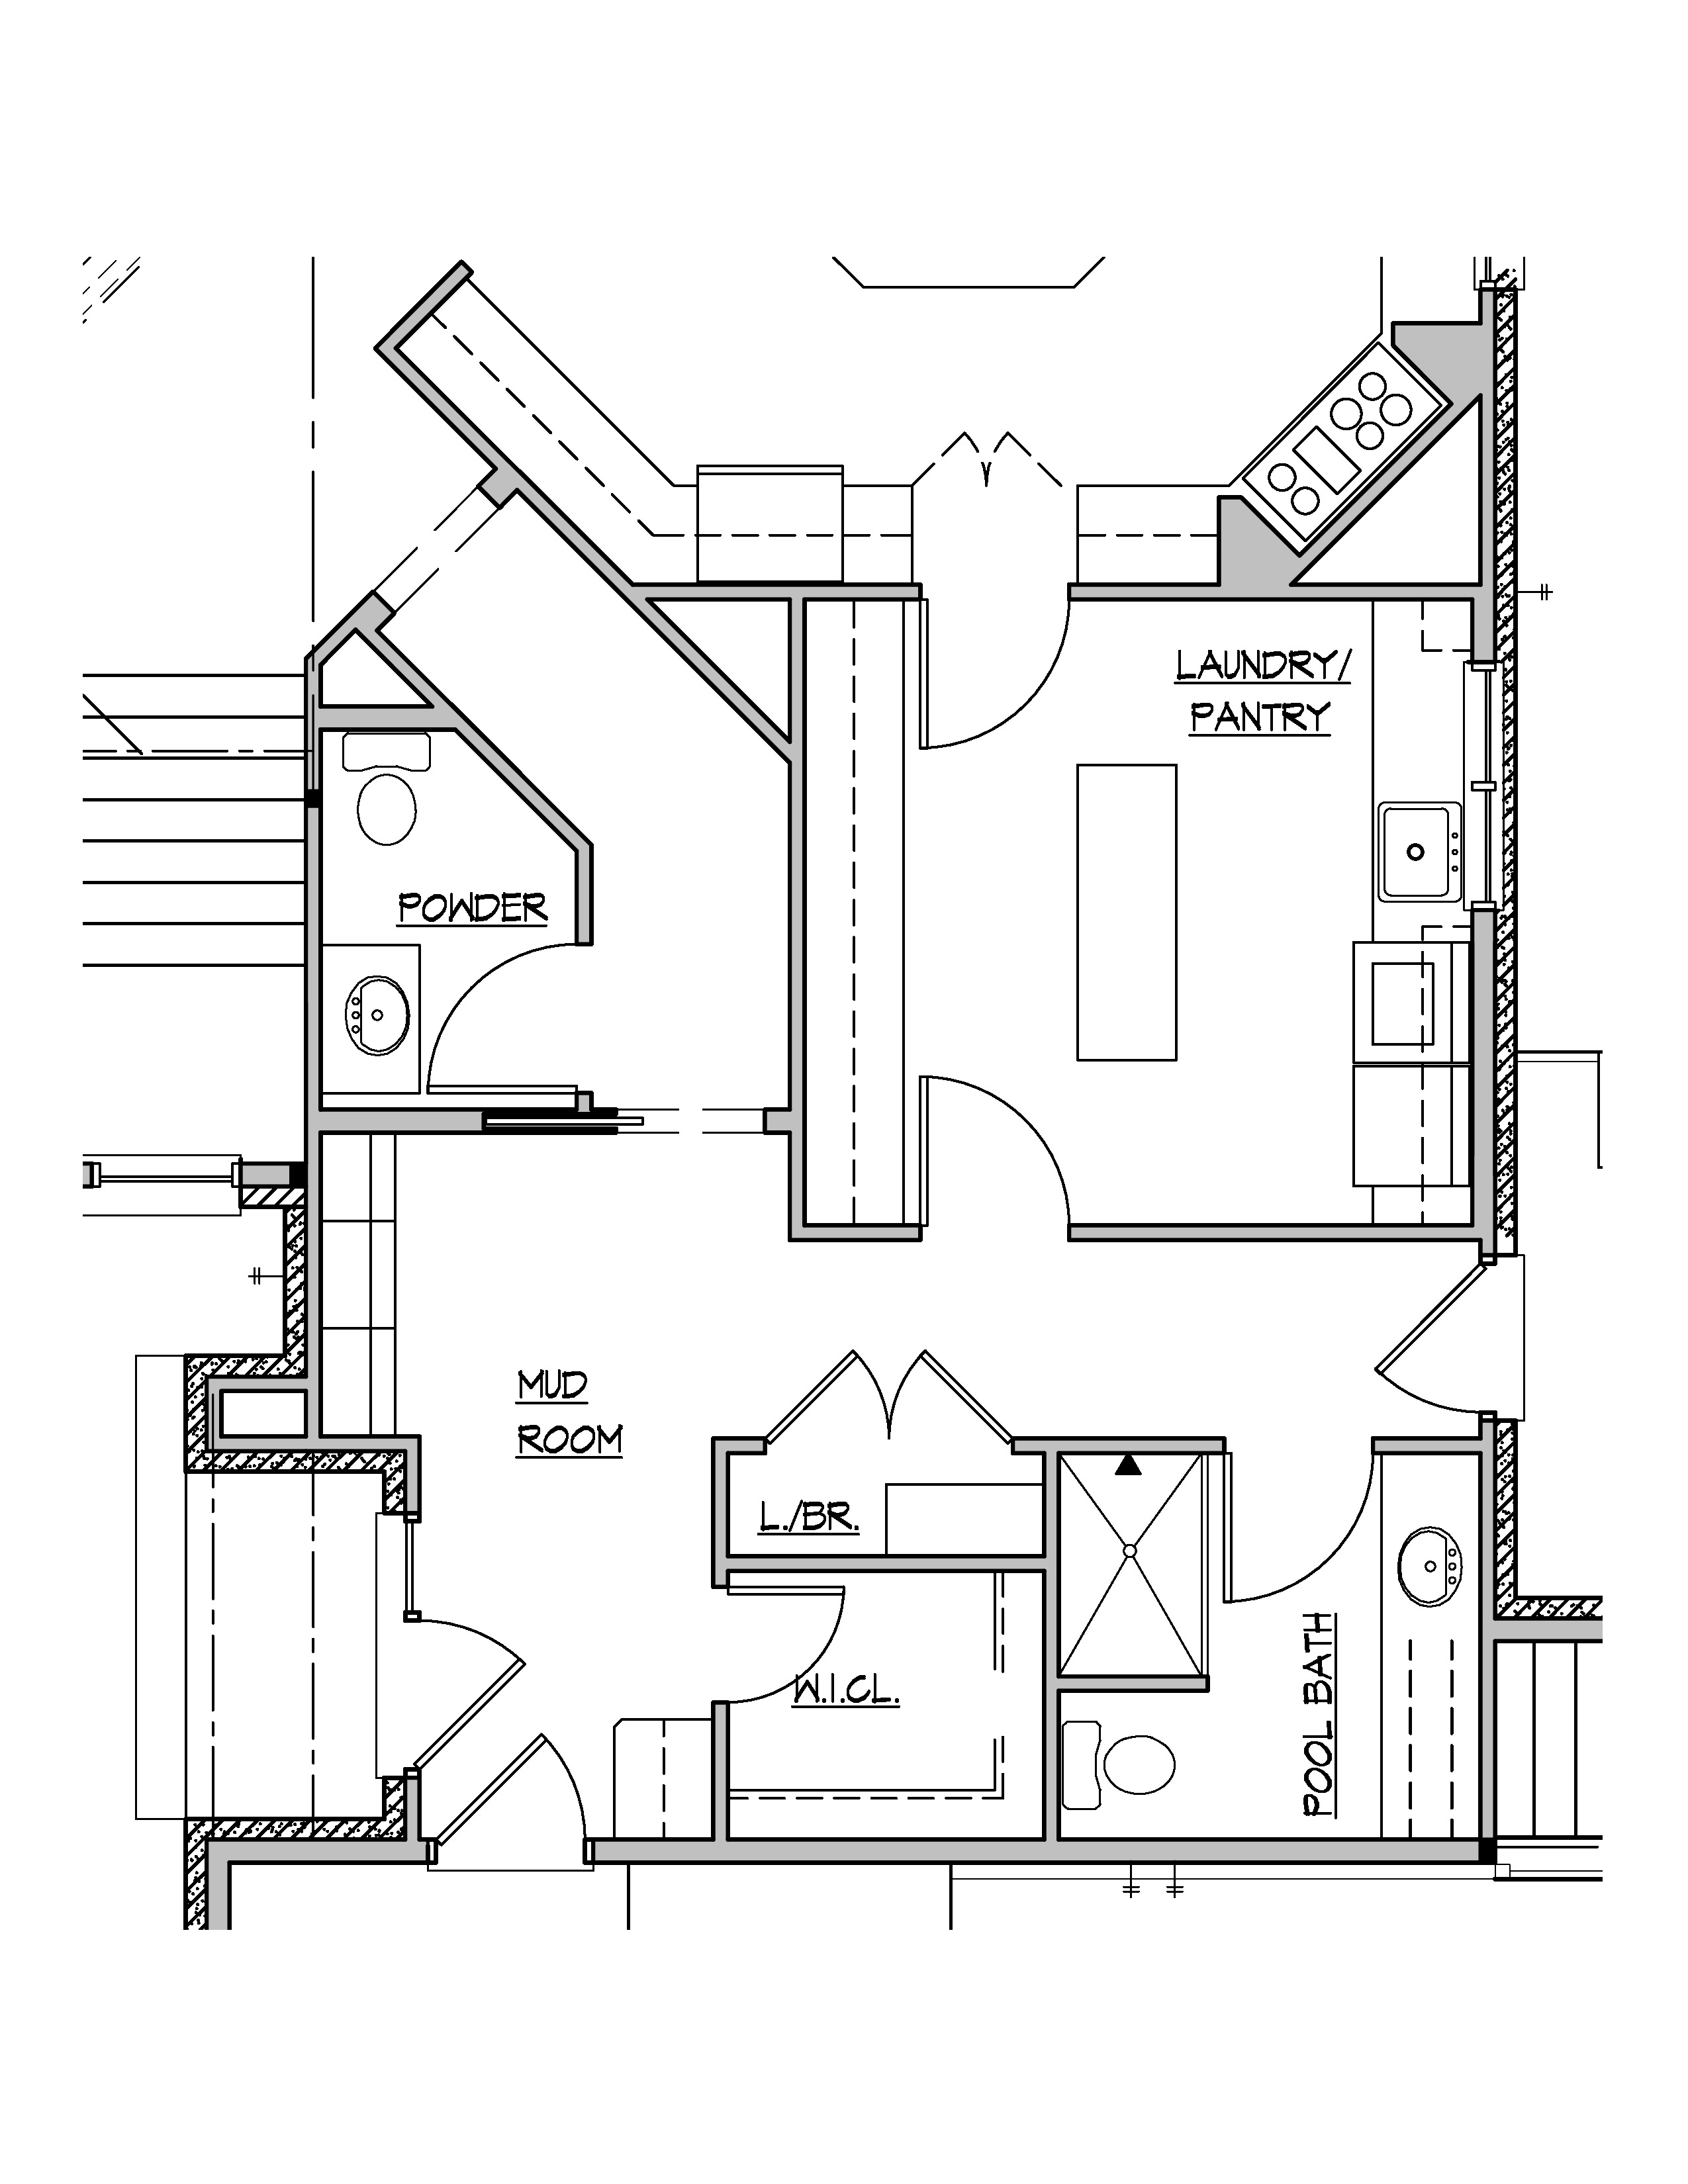 architectural drawings floor plans design inspiration architecture. 2550x3300 Room Mapping Software Activated Carbon Water Treatment Diagram Architectural Drawings Floor Plans Design Inspiration Architecture